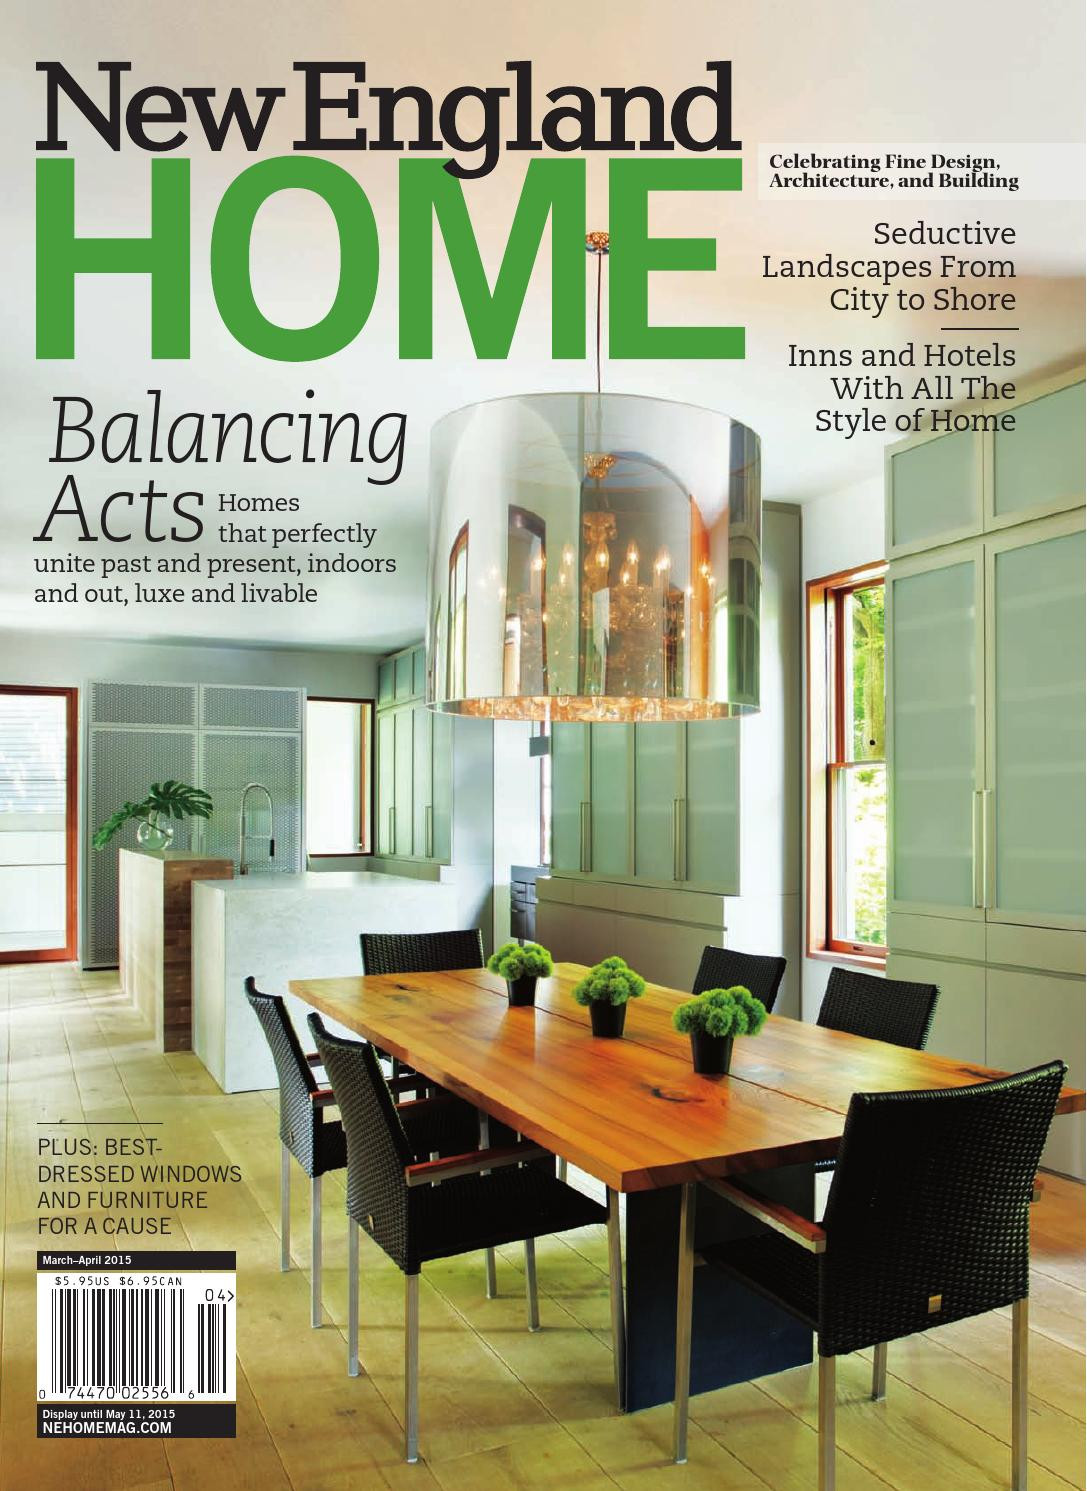 hardwood floor refinishing warwick ri of new england home march april 2015 by new england home magazine llc in new england home march april 2015 by new england home magazine llc issuu